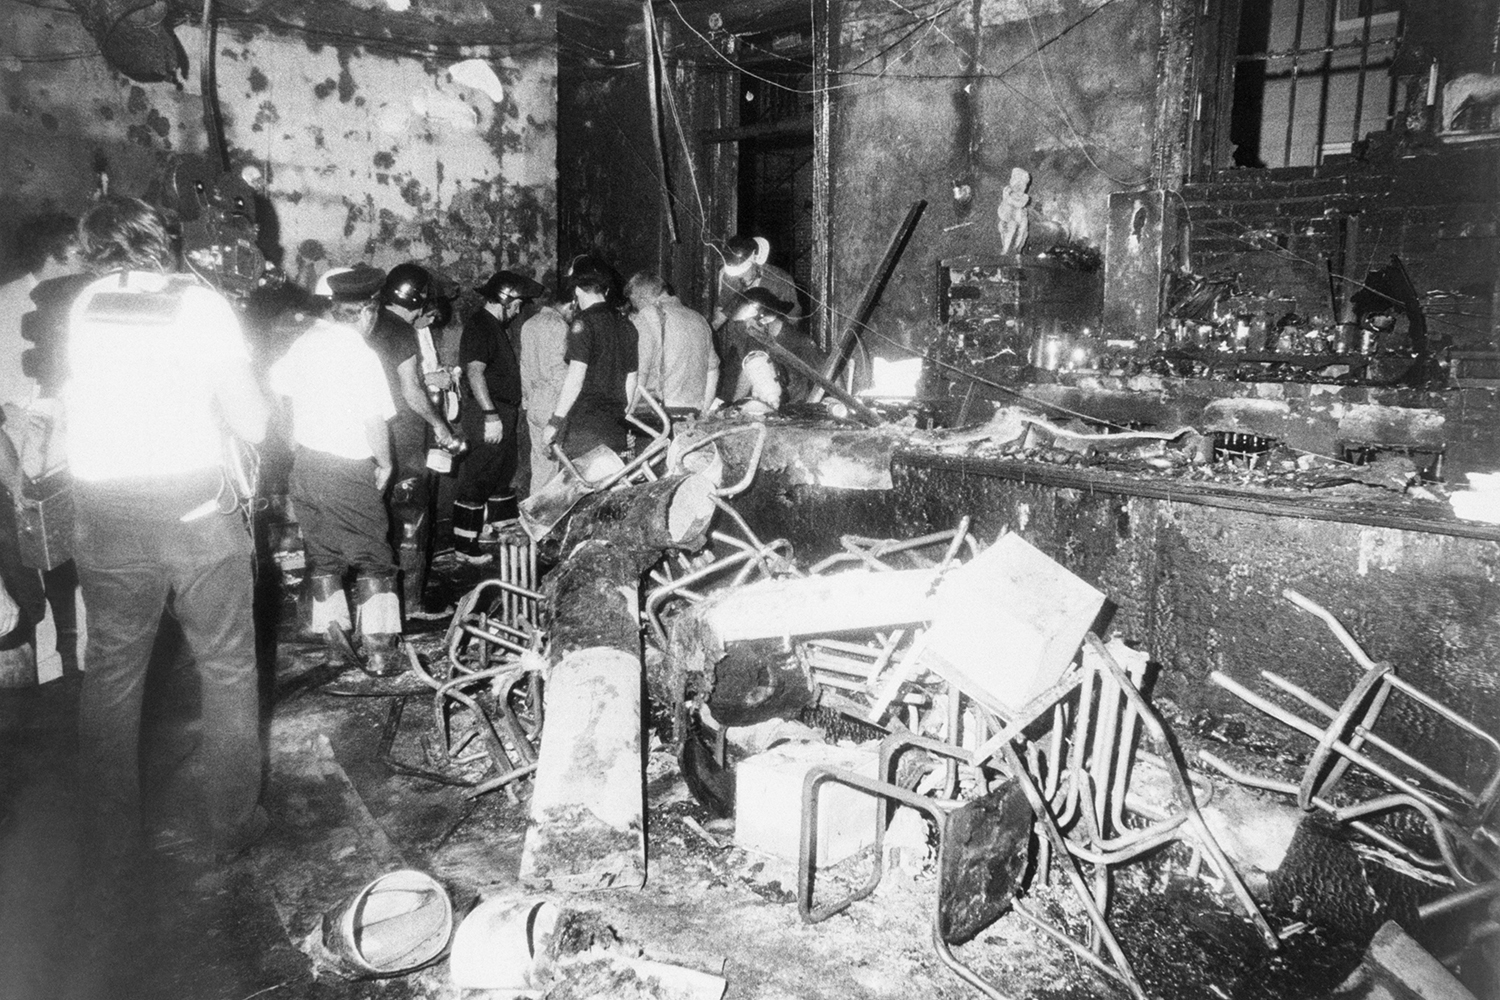 Fire at Upstairs in 1973